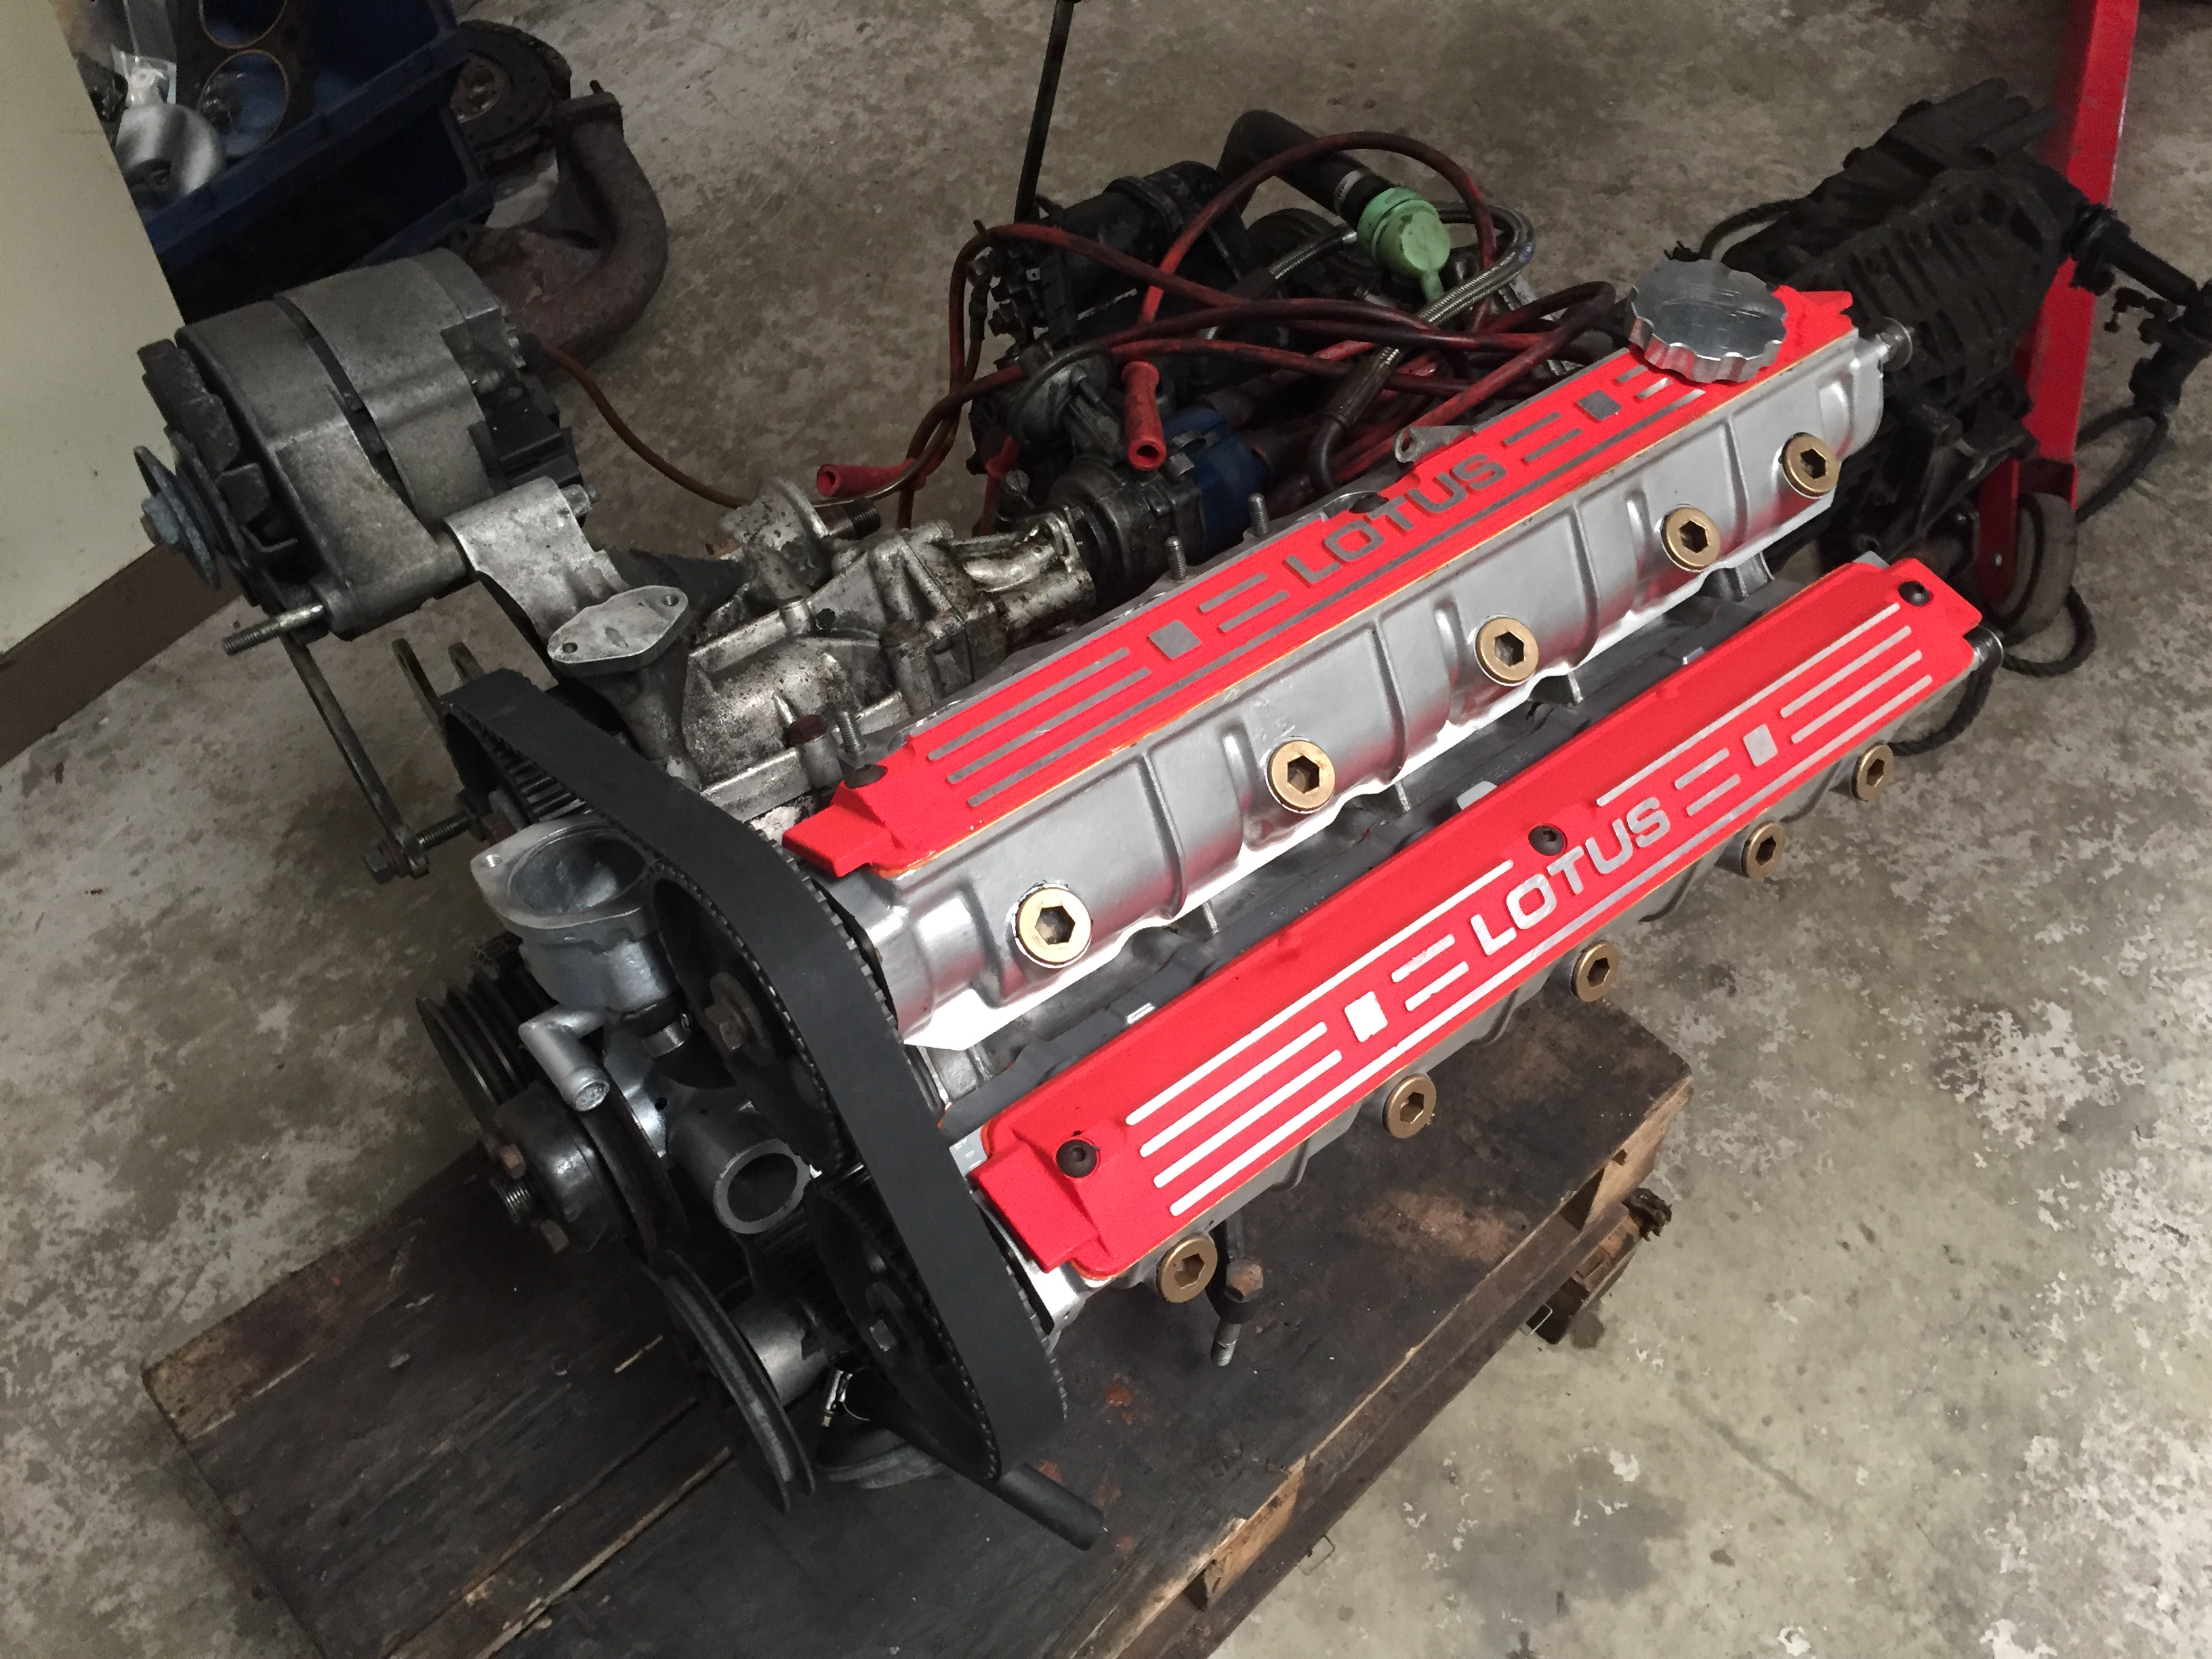 Lotus Esprit turbo top end engine rebuild read to go back in to Esprit